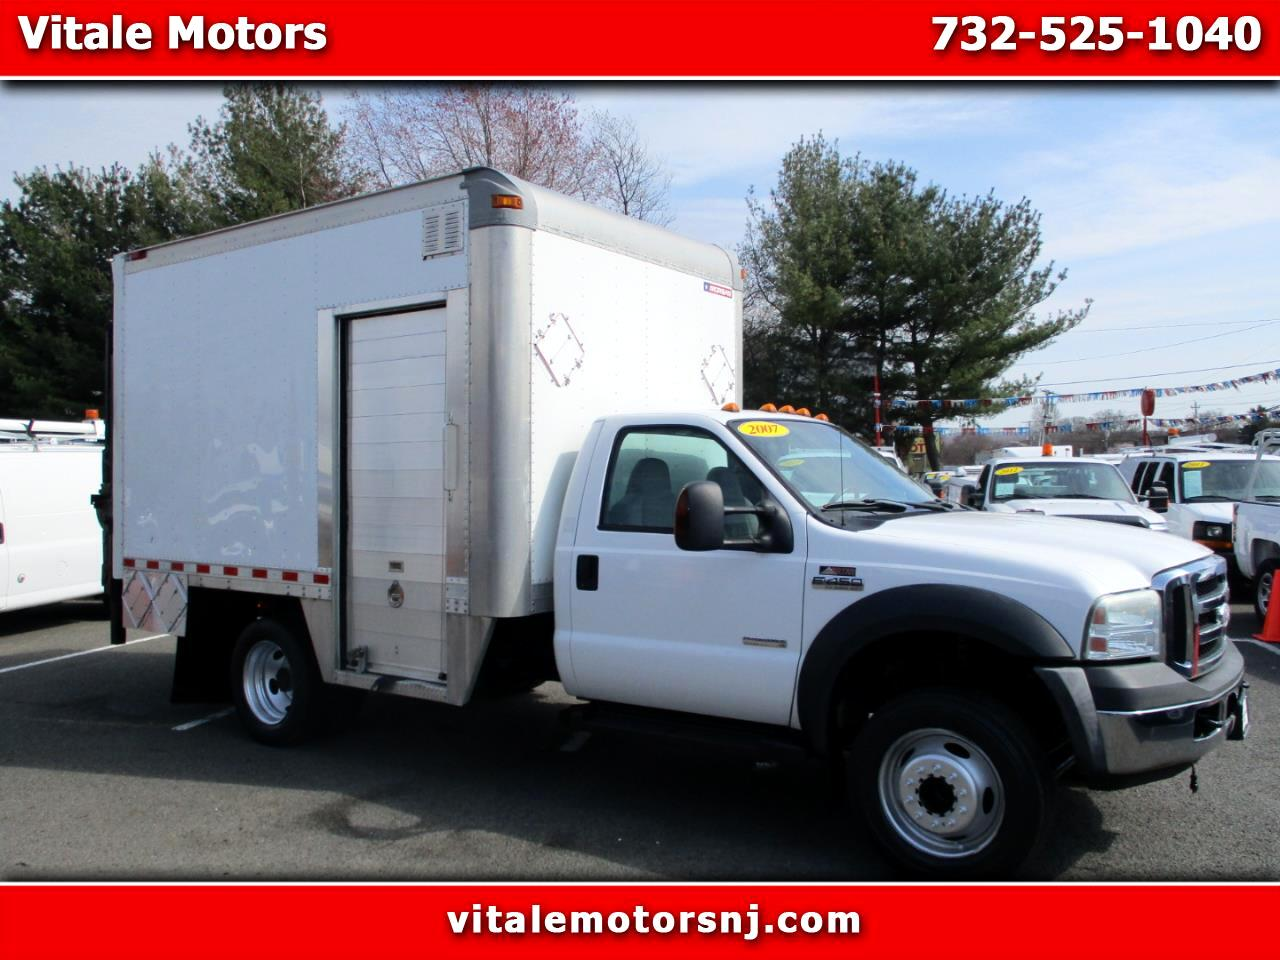 2007 Ford F-450 SD 12 FOOT BOX TRUCK/ STEP VAN SIDE DOOR, LIFT GATE